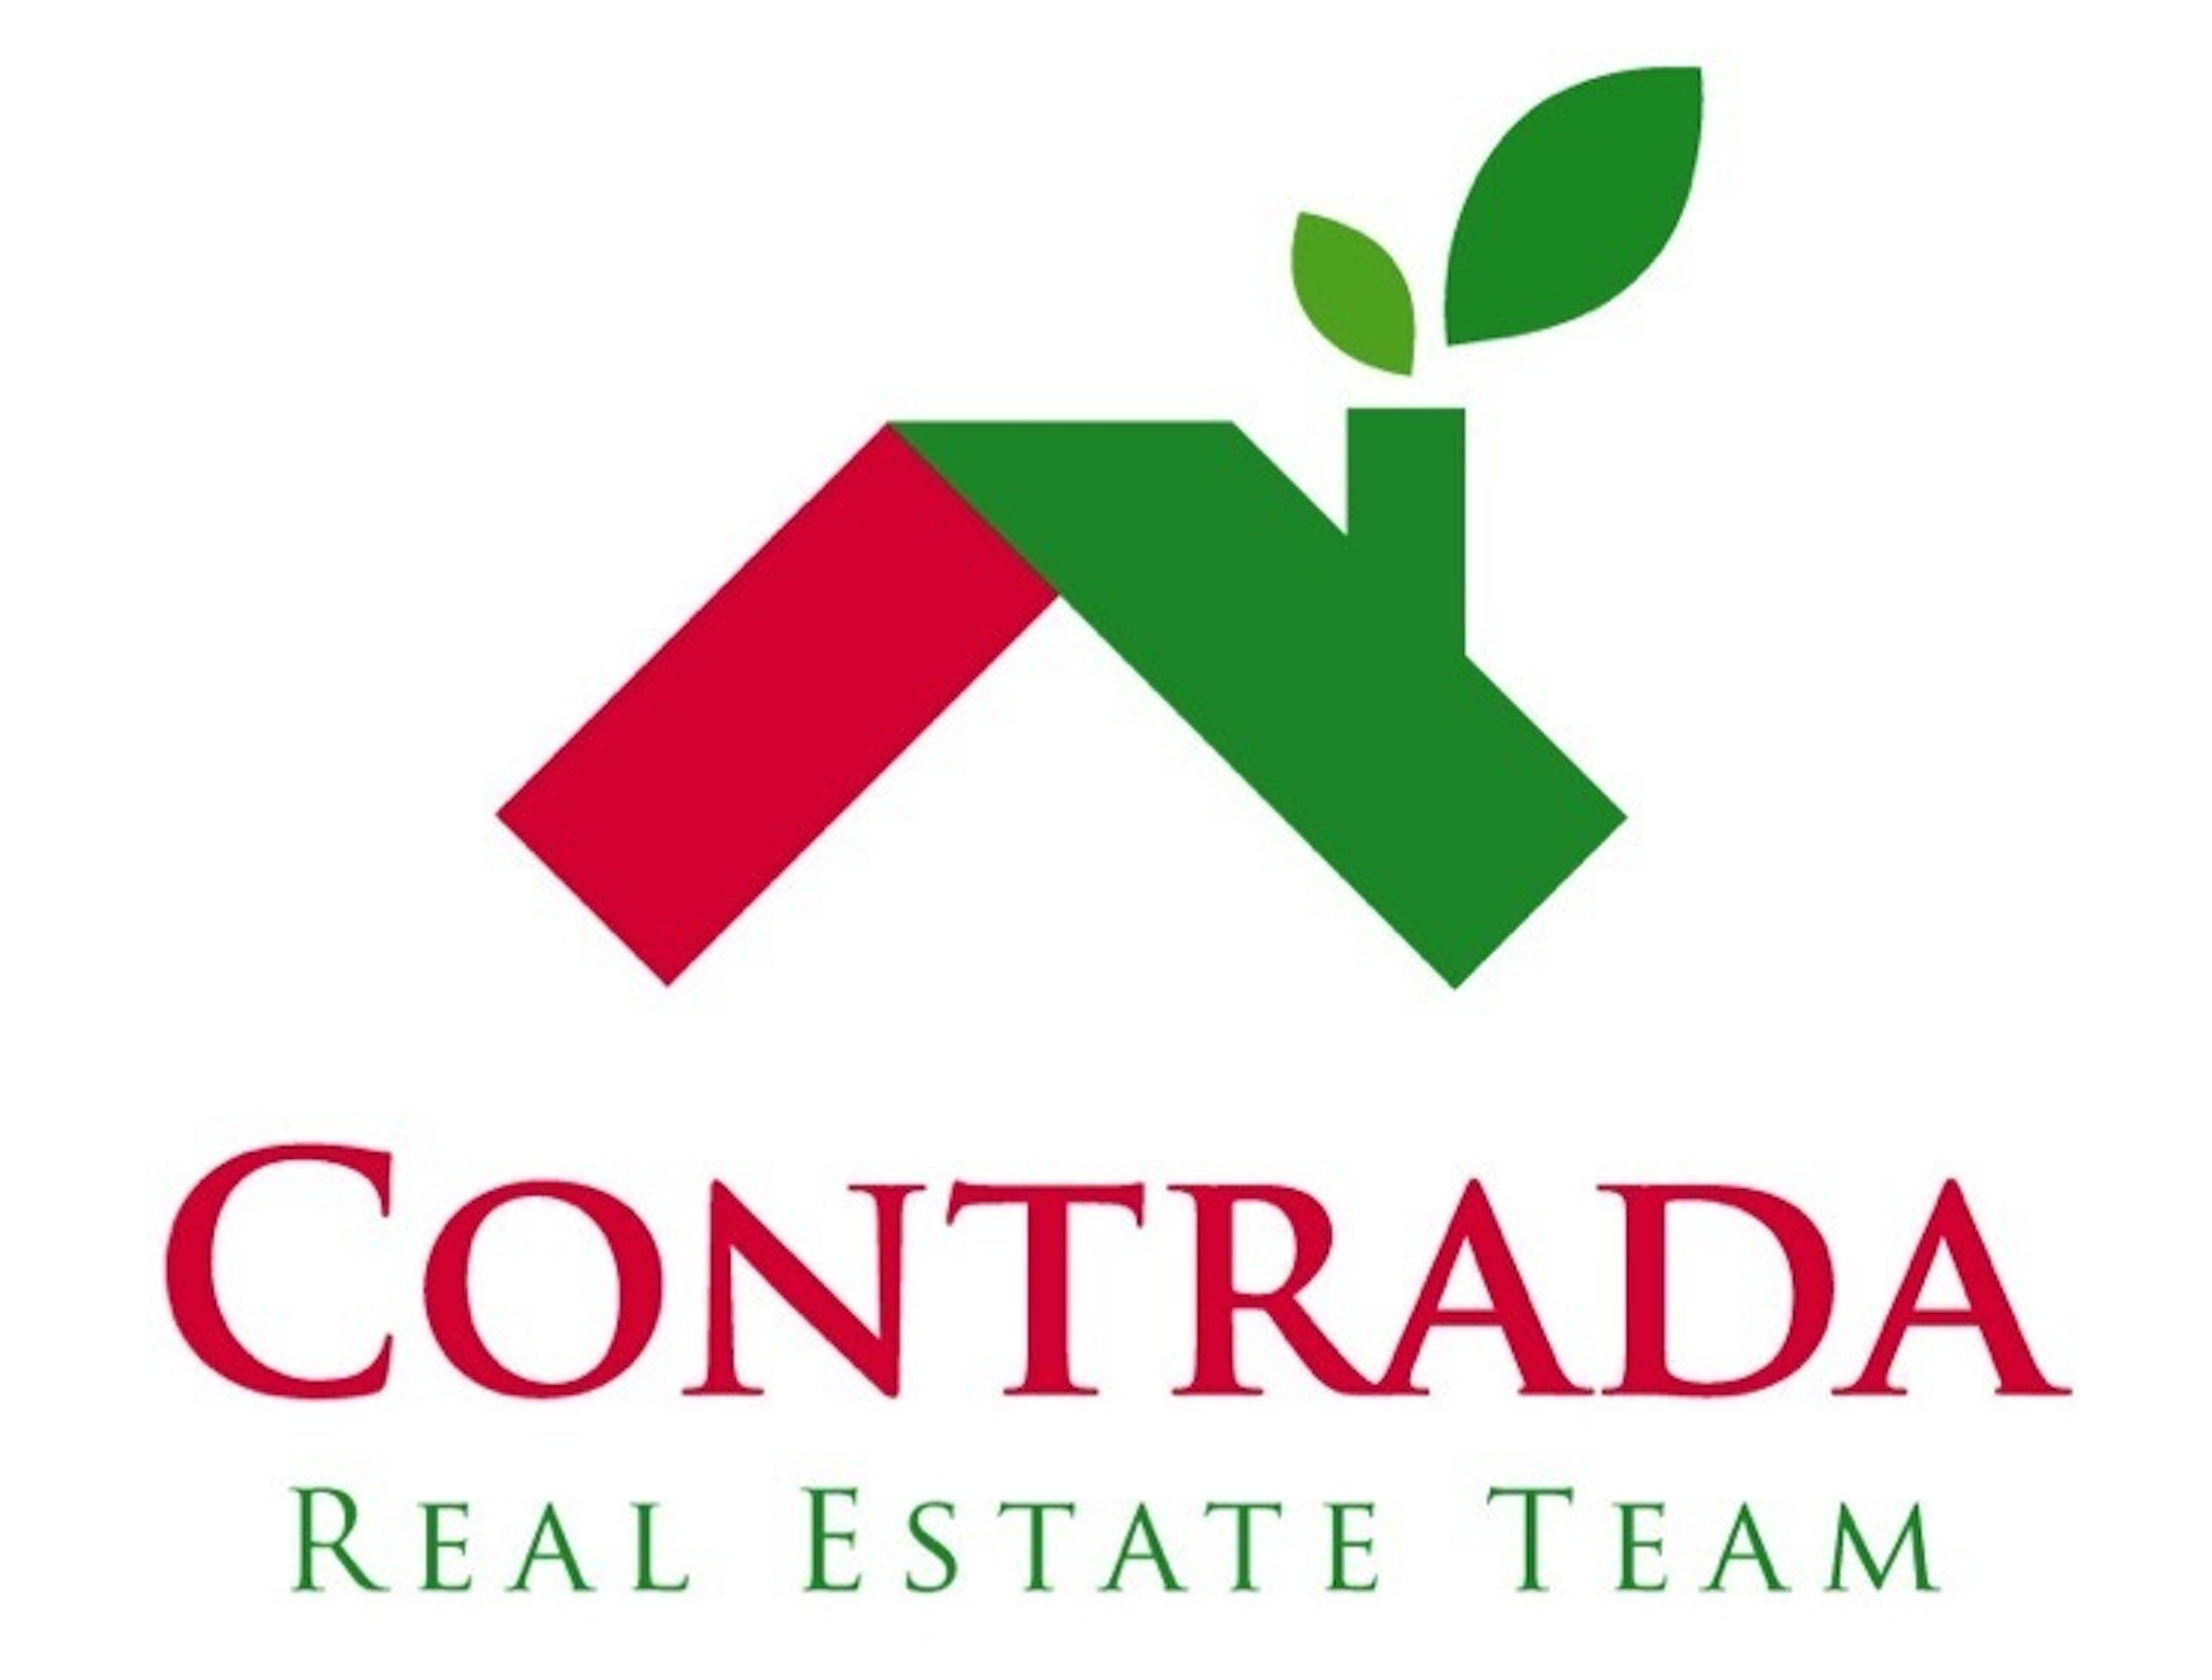 Contrada Real Estate Team